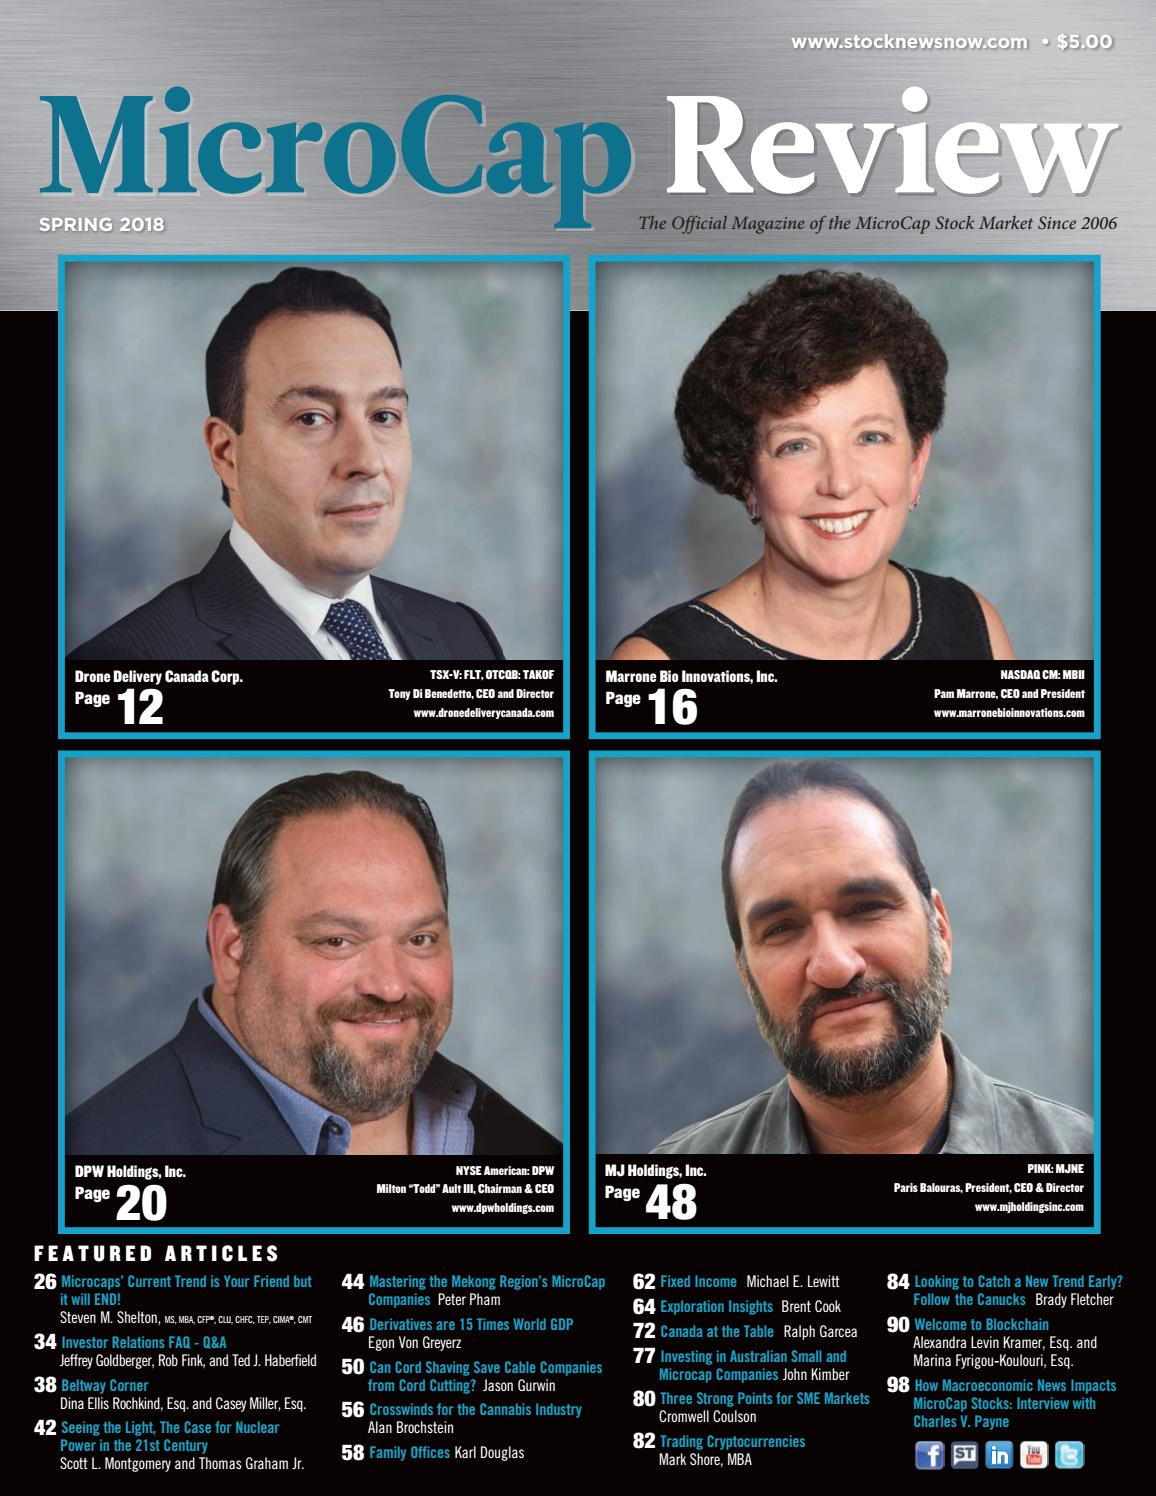 932d24c055a MicroCap Review Spring 2018 by MicroCap Review Magazine - issuu